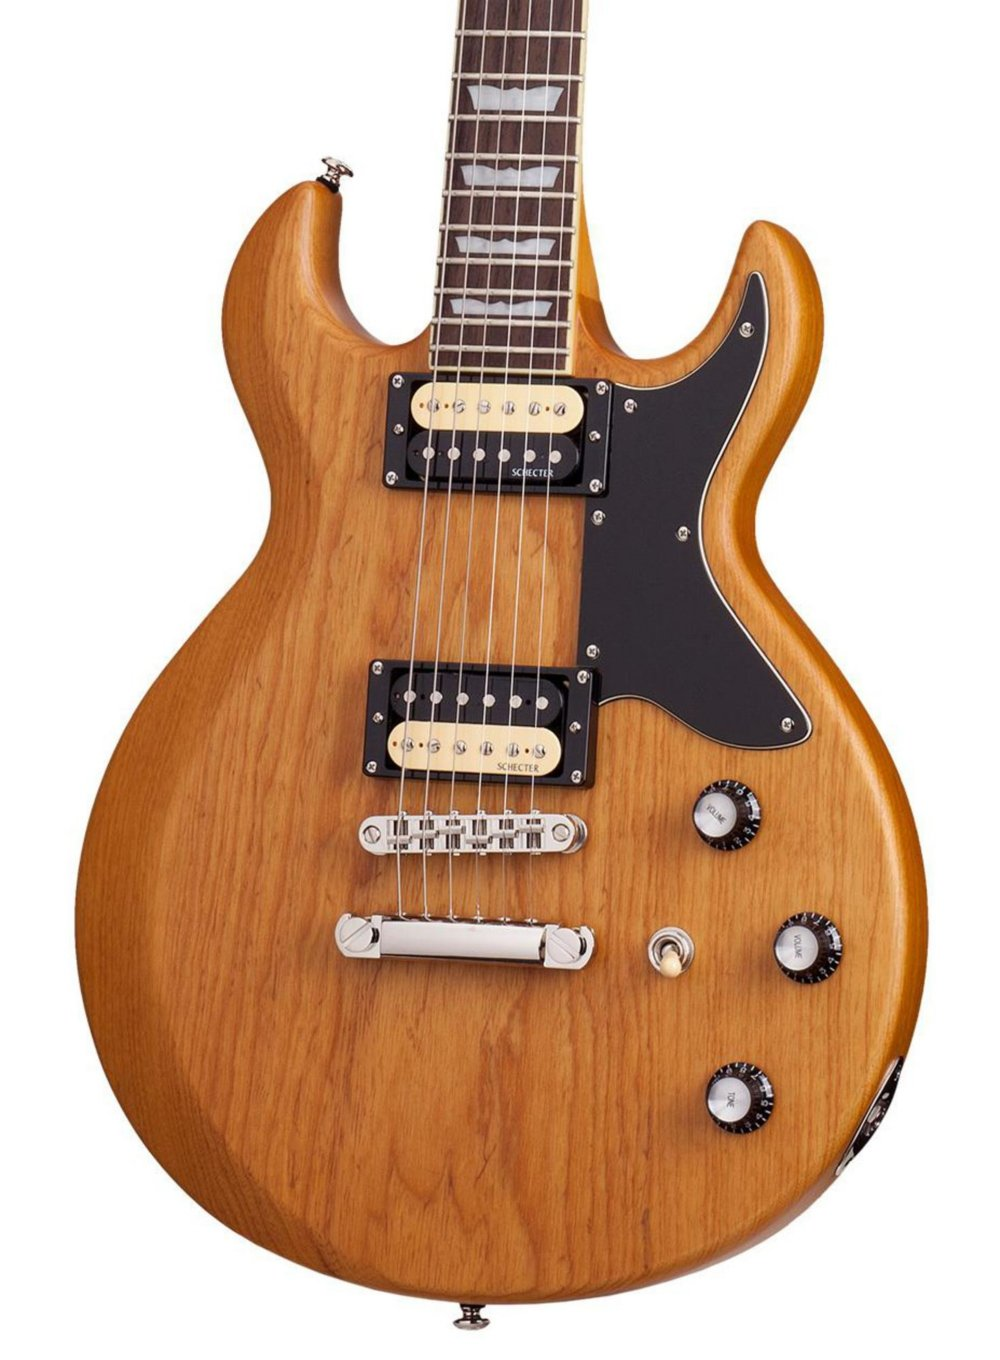 Cheap Schecter Guitar Research S-1 Electric Guitar Satin Aged Natural Black Friday & Cyber Monday 2019